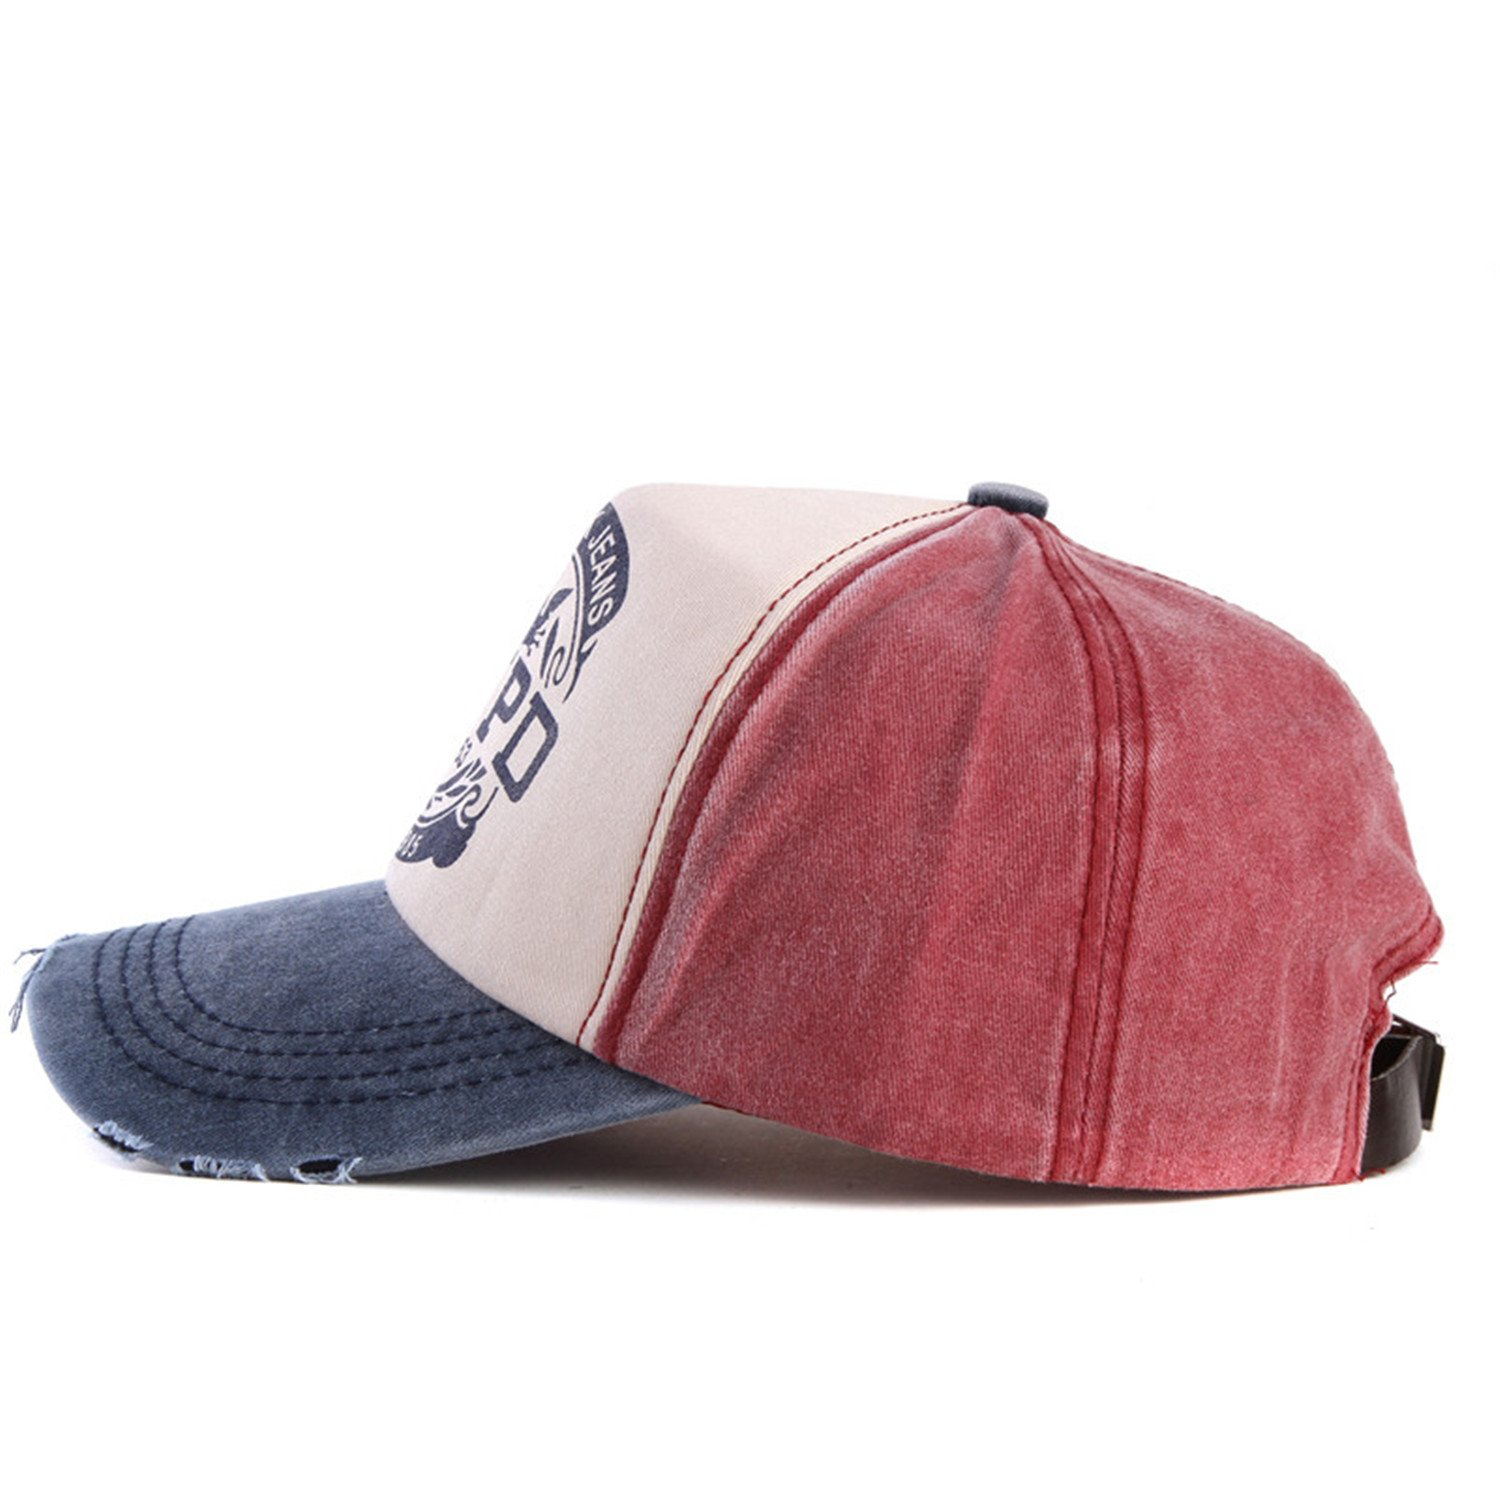 Amazon.com: baseball cap fitted hat Casual cap gorras 5 panel hip hop snapback hats wash cap unisex red and coffer 56to60cm: Health & Personal Care